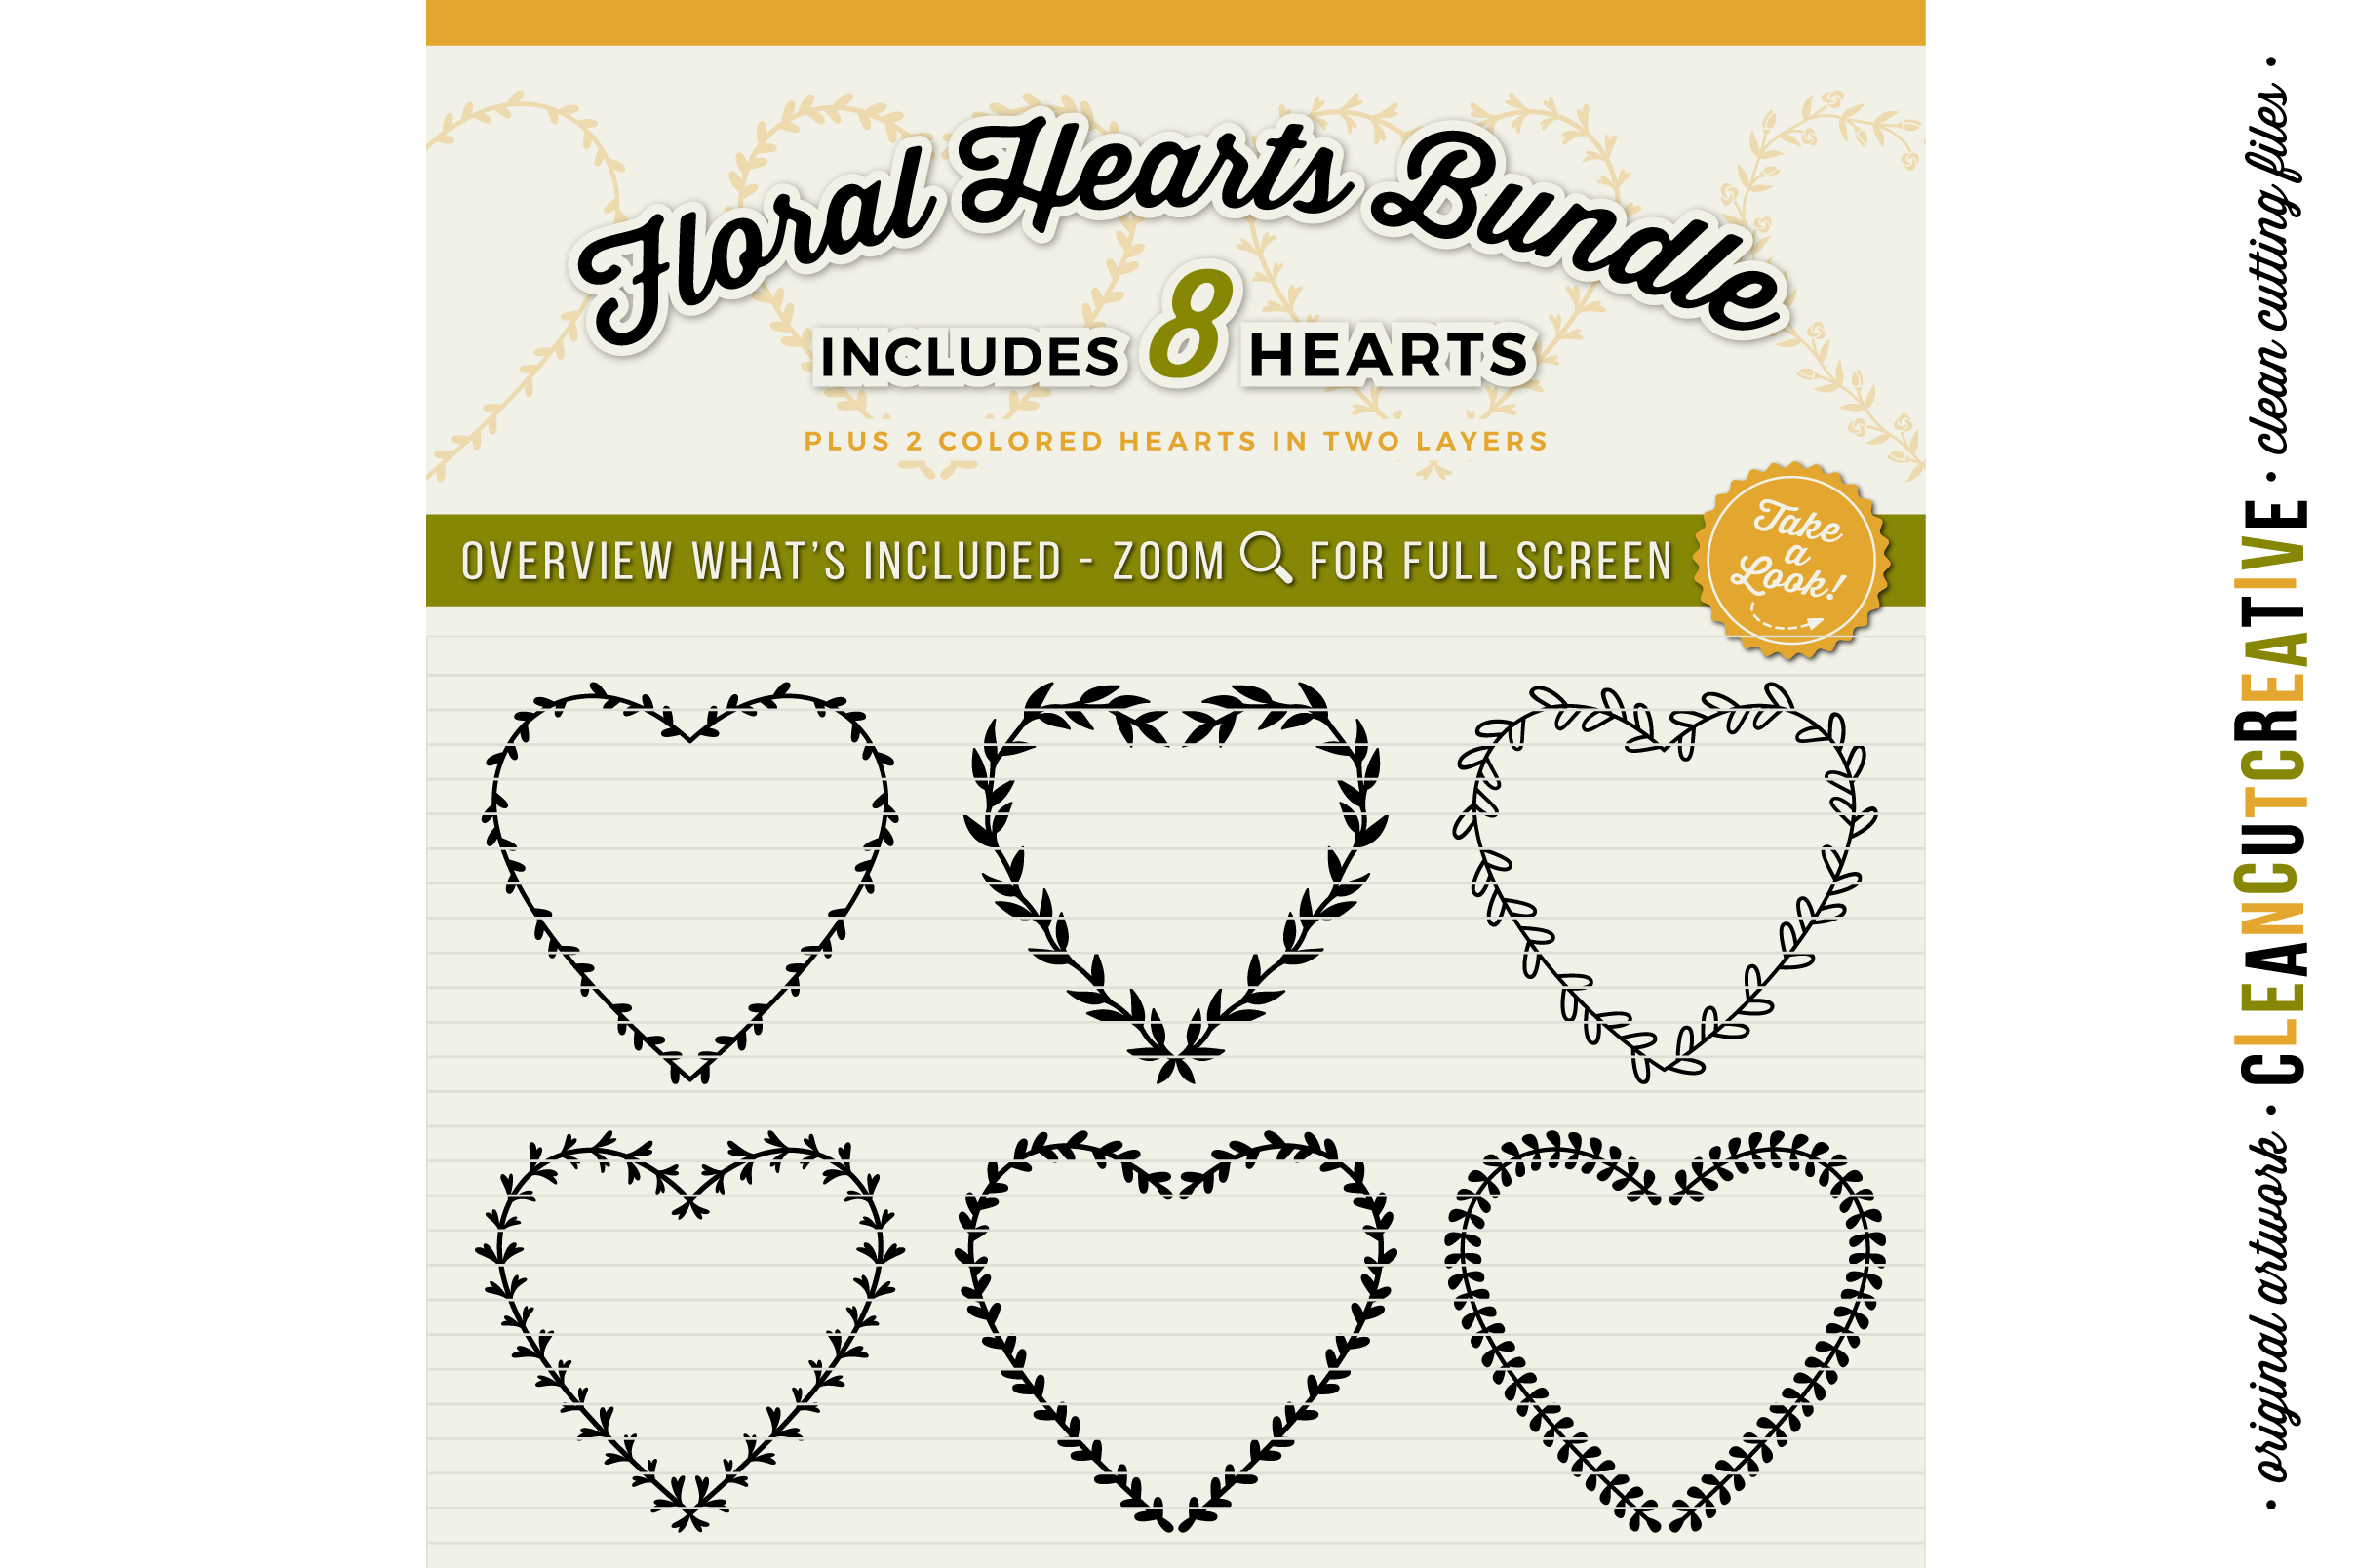 FLORAL MEGA BUNDLE 30 wreaths, laurels and hearts leaf frames - SVG DXF EPS PNG - for Cricut and Silhouette Cameo - clean cutting digital files example image 7